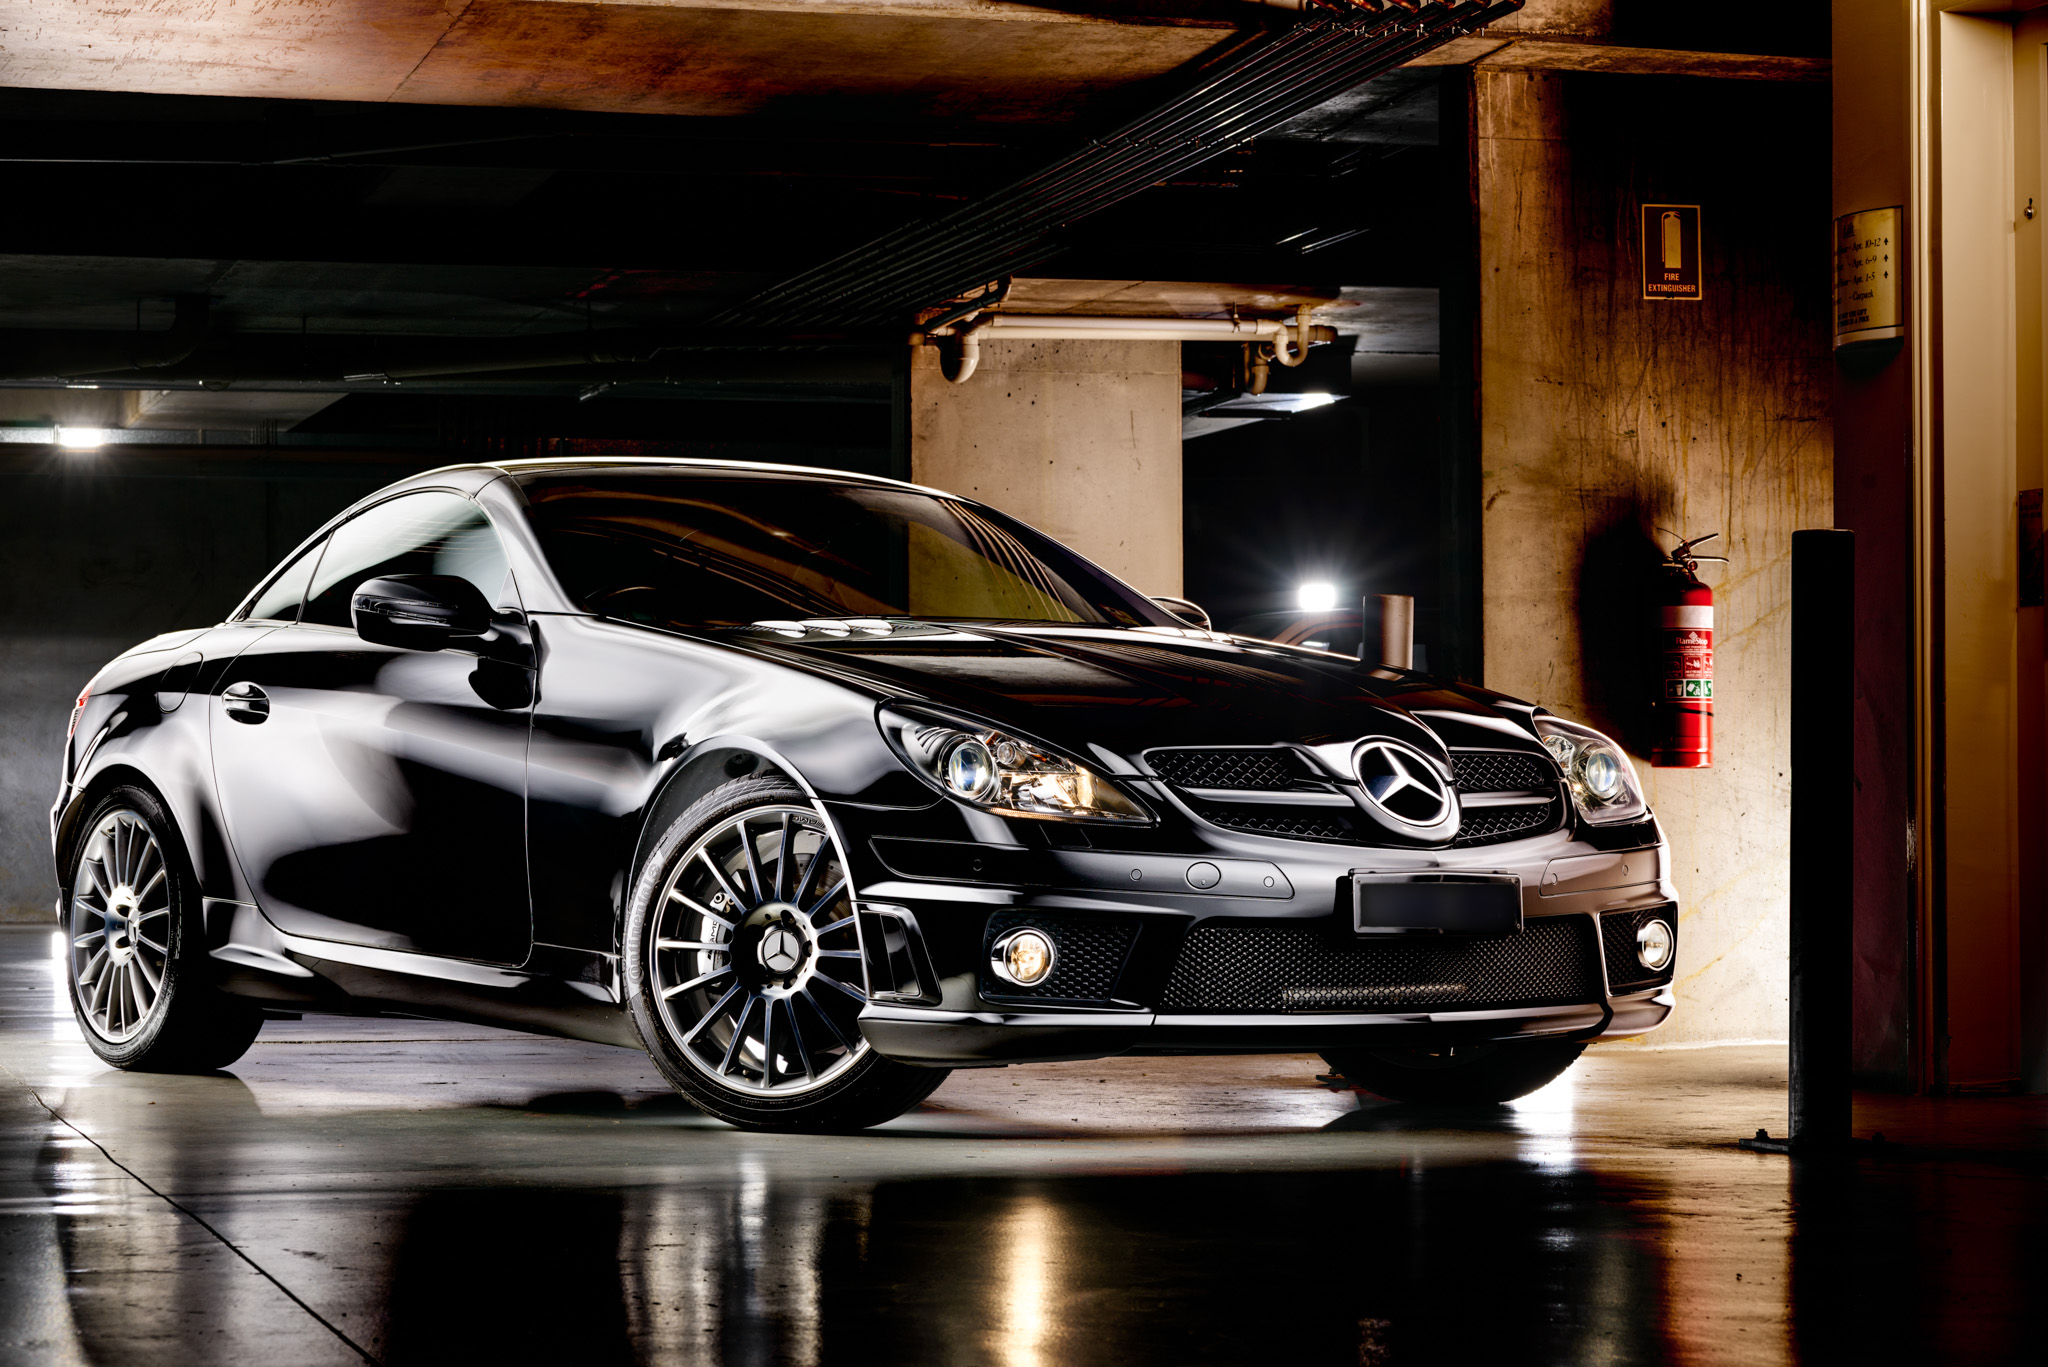 Light Painting - Mercedes SLK 55 AMG black